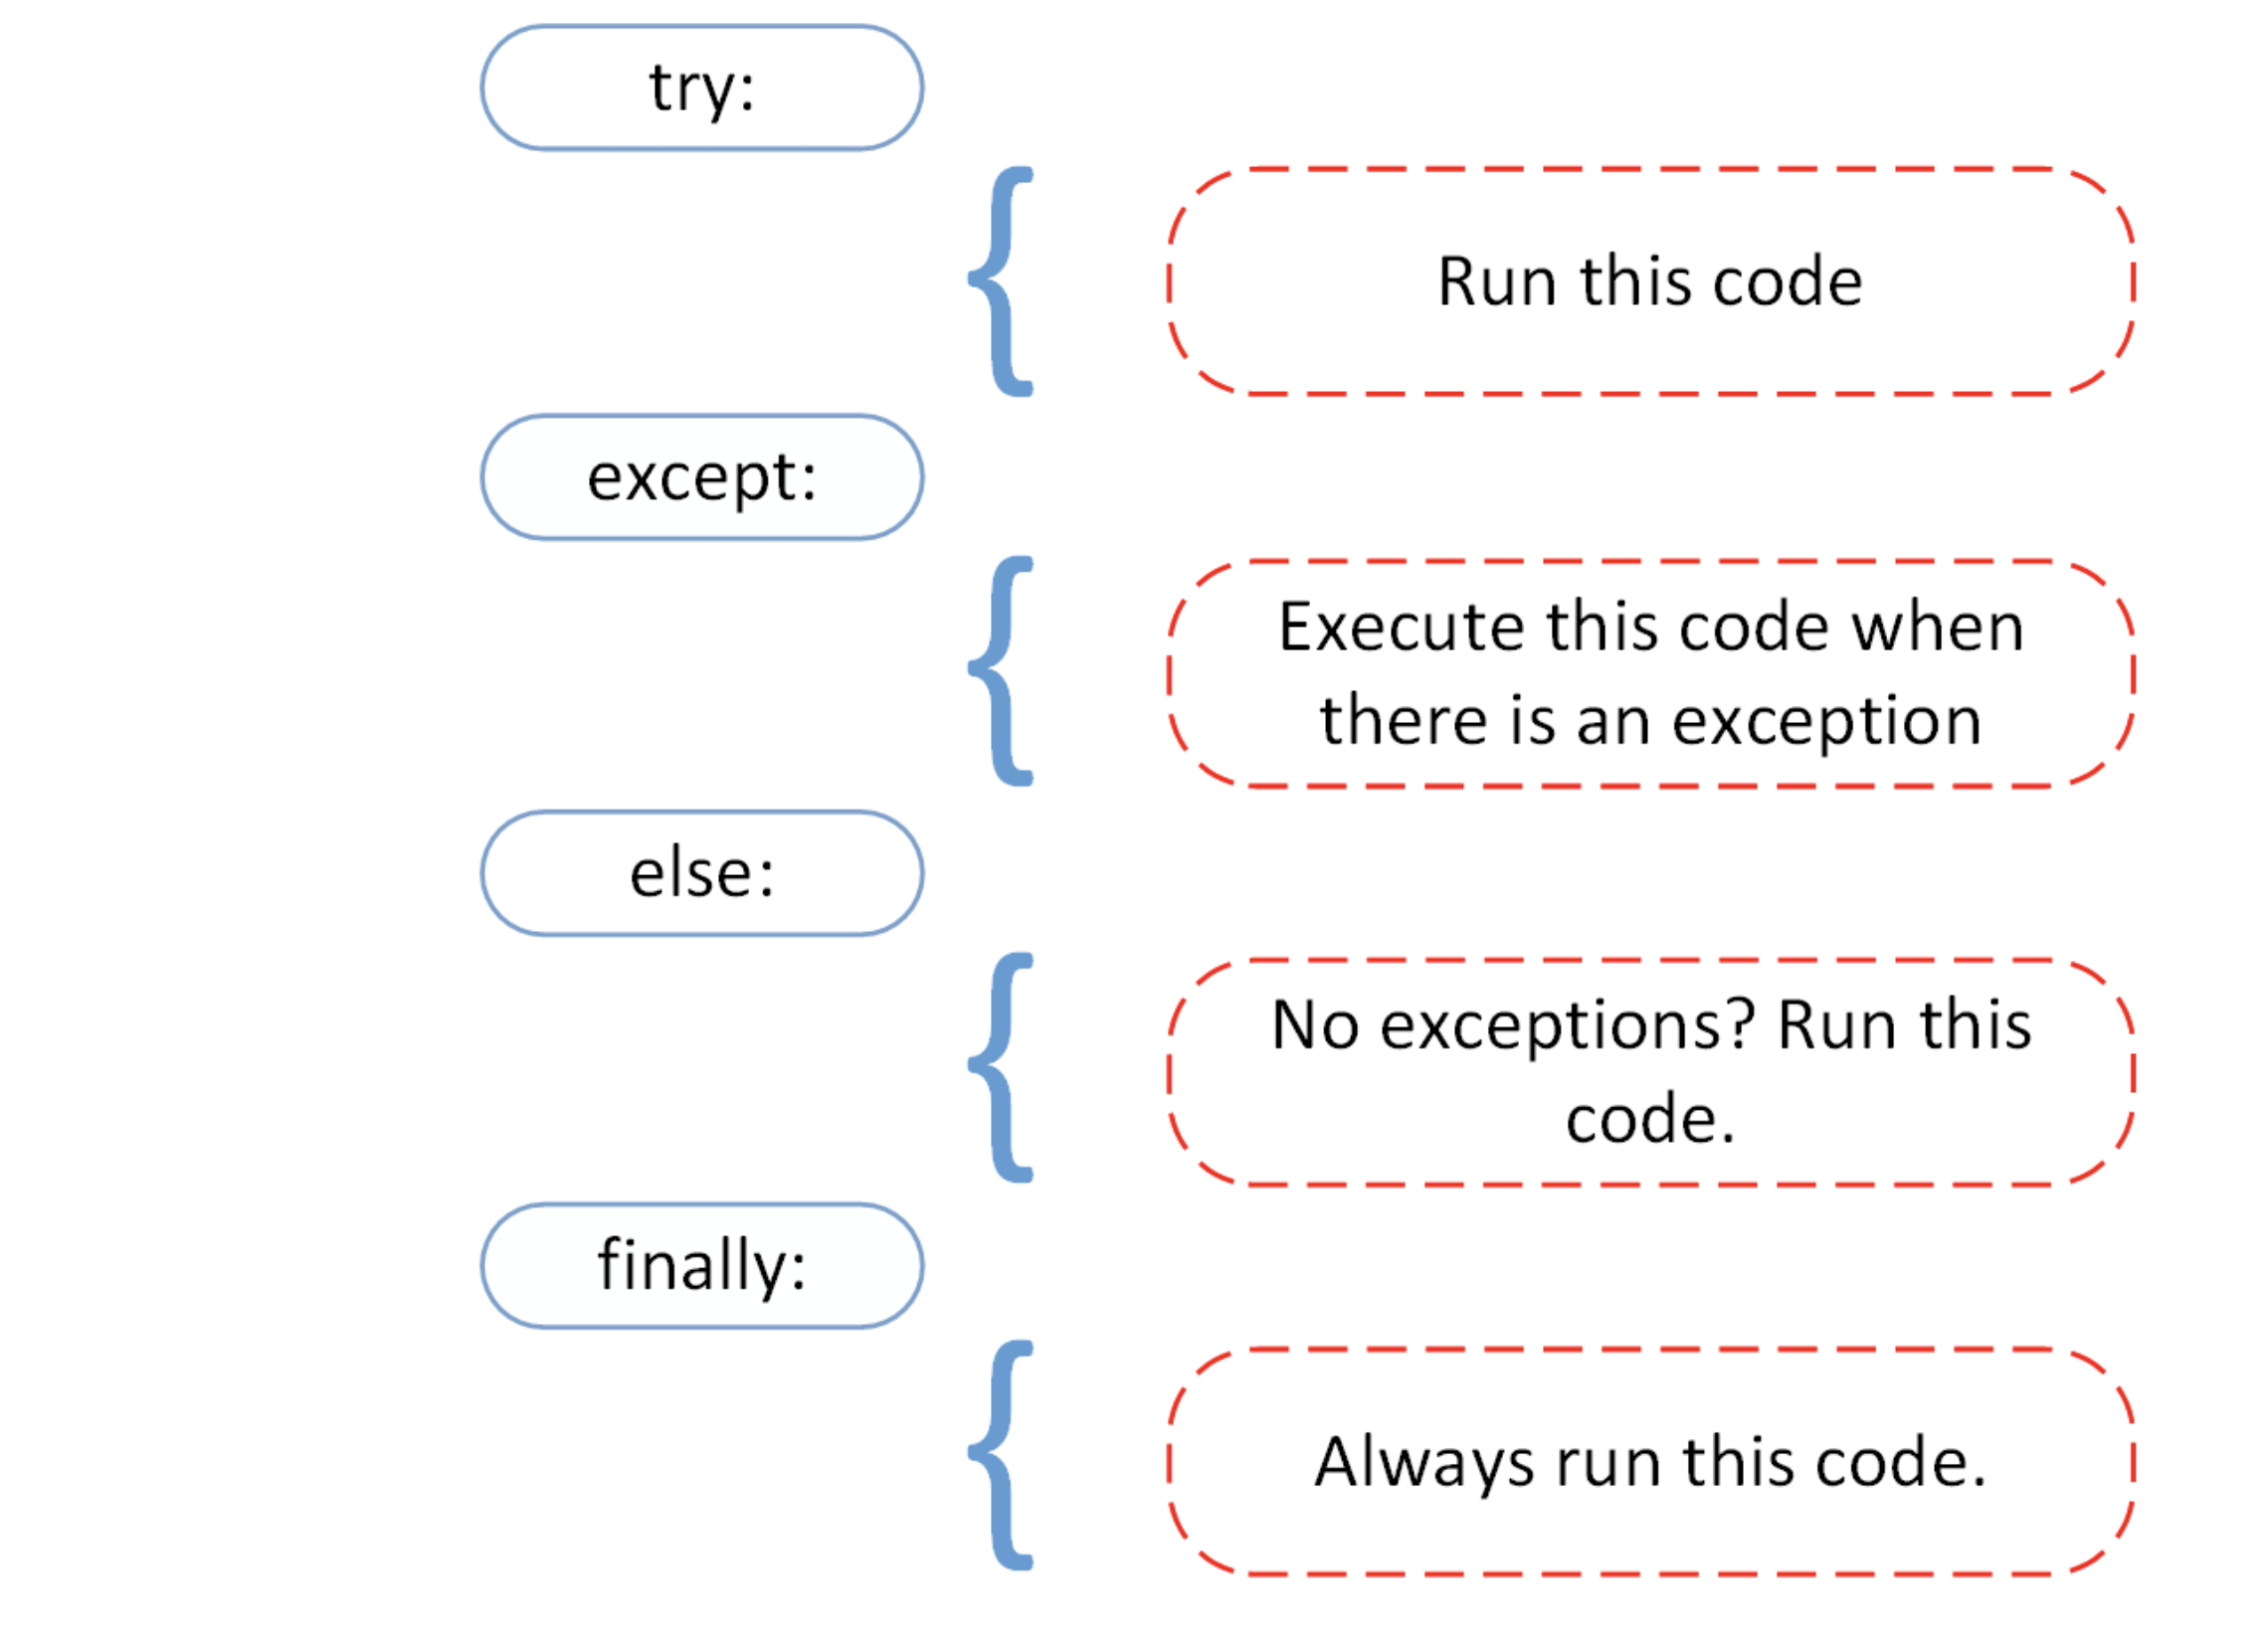 Example of Try and Except code block.